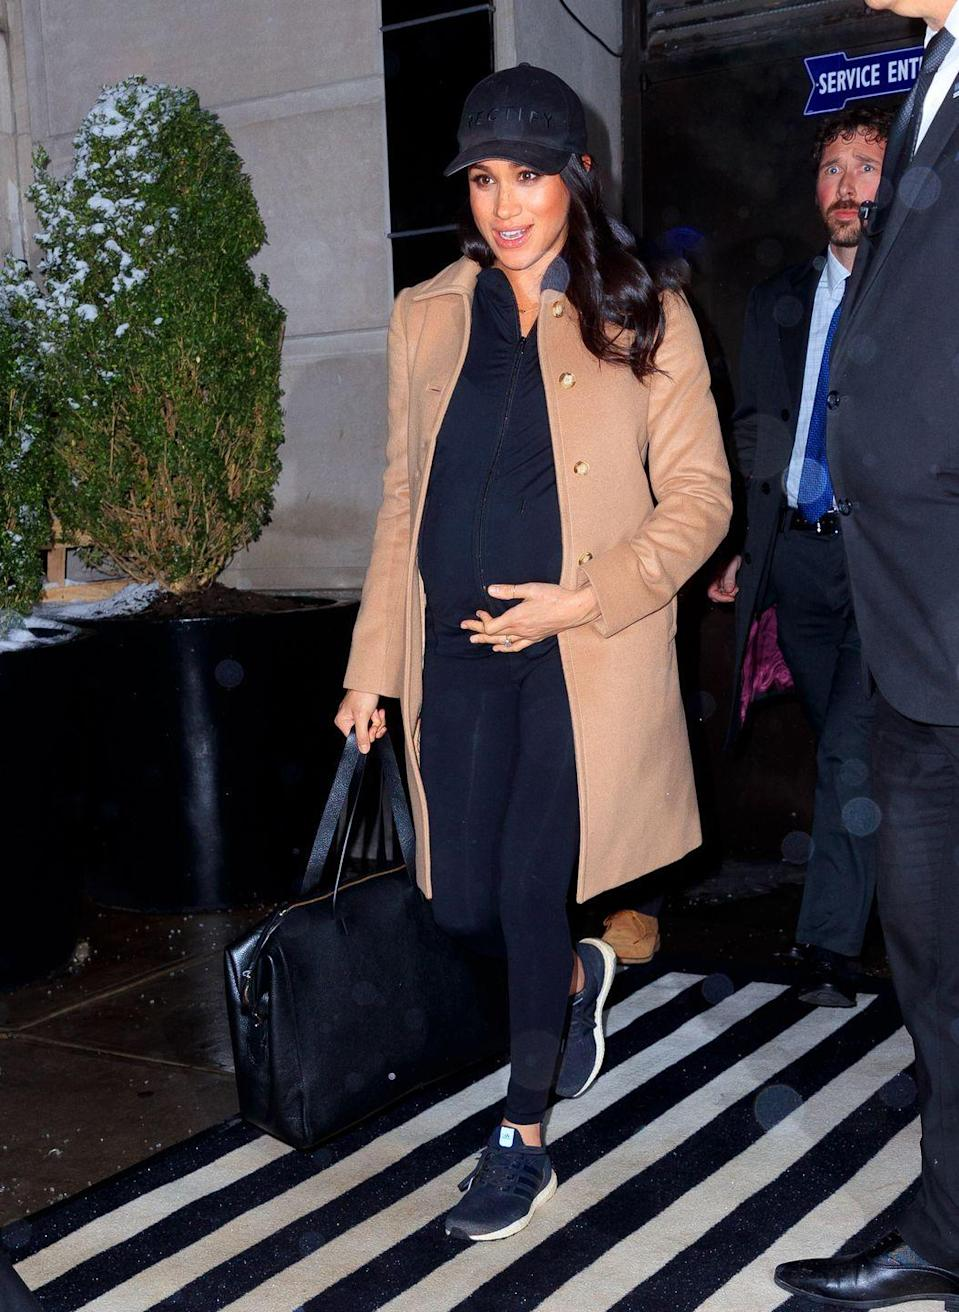 "<p>Meghan Markle wore a camel coat over her black atheleisure outfit that she paired with a black baseball cap, sneakers, and a leather <a href=""https://www.cuyana.com/le-sud-leather-weekender.html?"" rel=""nofollow noopener"" target=""_blank"" data-ylk=""slk:weekender by Cuyana"" class=""link rapid-noclick-resp"">weekender by Cuyana</a>, as she left the Mark Hotel for the airport. The Duchess has been in New York for the past five days to <a href=""https://www.townandcountrymag.com/society/tradition/a26409579/meghan-markle-baby-shower-details/"" rel=""nofollow noopener"" target=""_blank"" data-ylk=""slk:celebrate her baby shower"" class=""link rapid-noclick-resp"">celebrate her baby shower</a> with close friends. </p><p><a class=""link rapid-noclick-resp"" href=""https://go.redirectingat.com?id=74968X1596630&url=https%3A%2F%2Fwww.cuyana.com%2Fle-sud-leather-weekender.html&sref=https%3A%2F%2Fwww.townandcountrymag.com%2Fstyle%2Ffashion-trends%2Fg3272%2Fmeghan-markle-preppy-style%2F"" rel=""nofollow noopener"" target=""_blank"" data-ylk=""slk:SHOP NOW"">SHOP NOW</a> <em>Cuyana Weekender Bag, $395</em></p>"